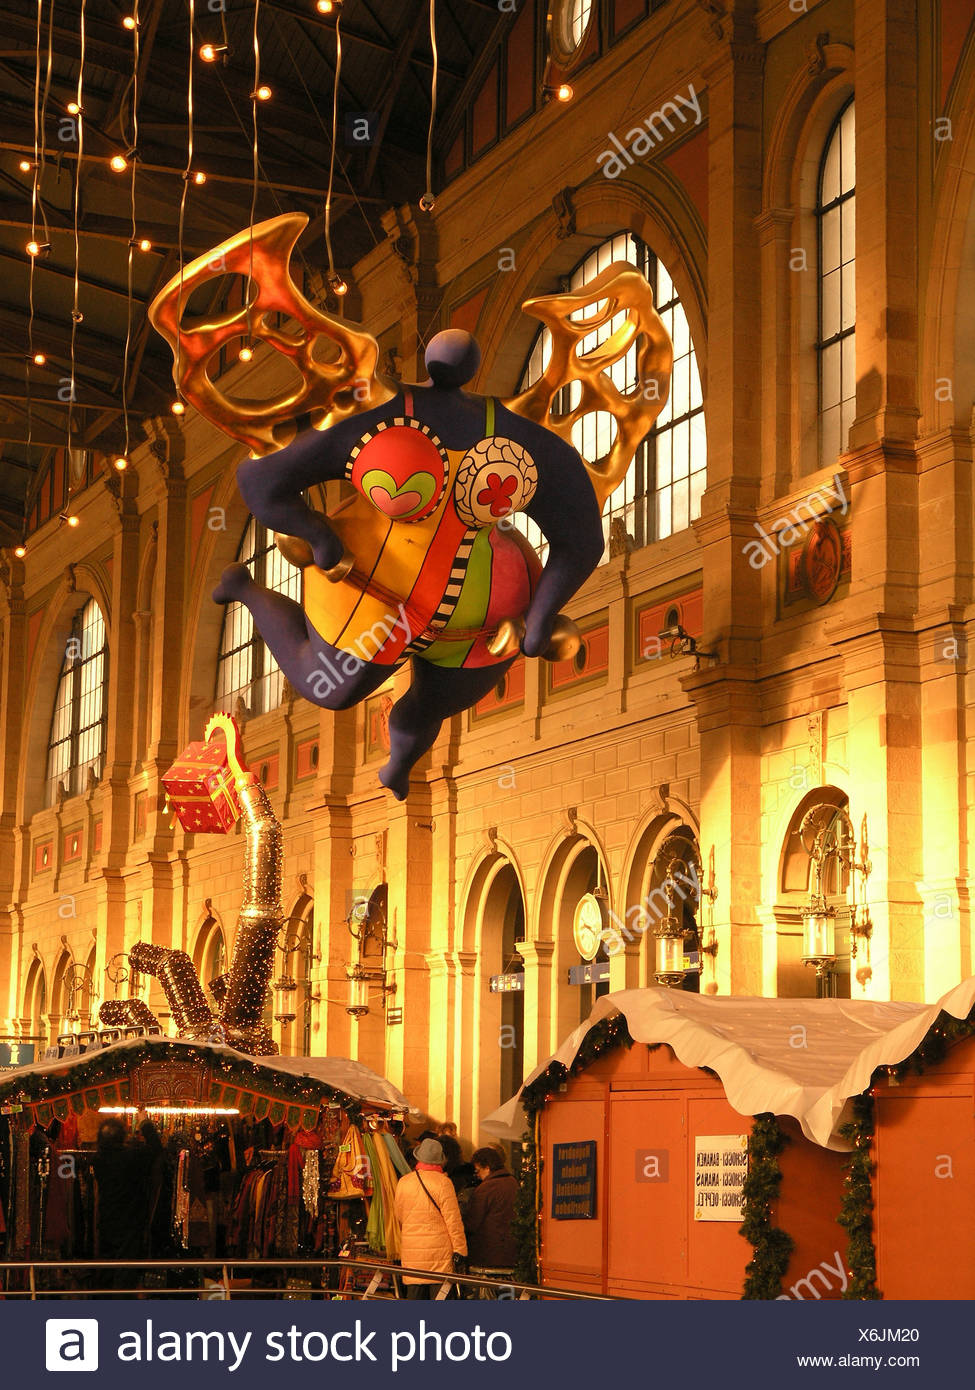 Niki de Saint-Phalle angel guardian angel Christmas fair market Christmas HB central station railway station - Stock Image